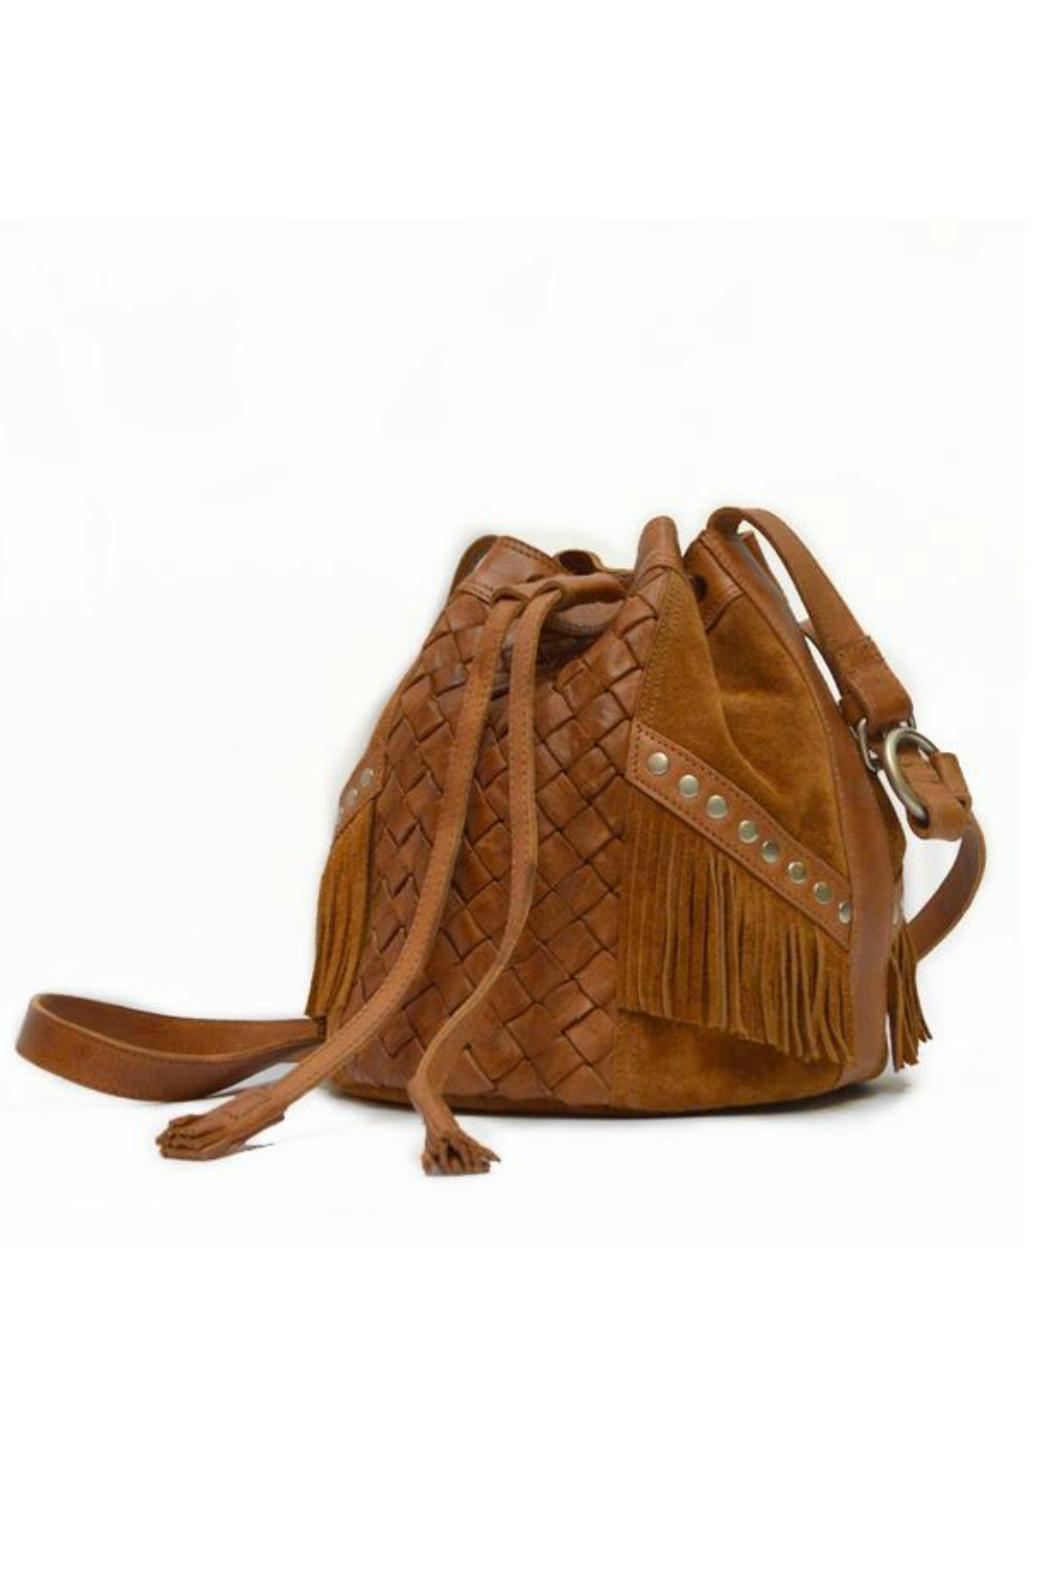 Image Result For Bucket Bags